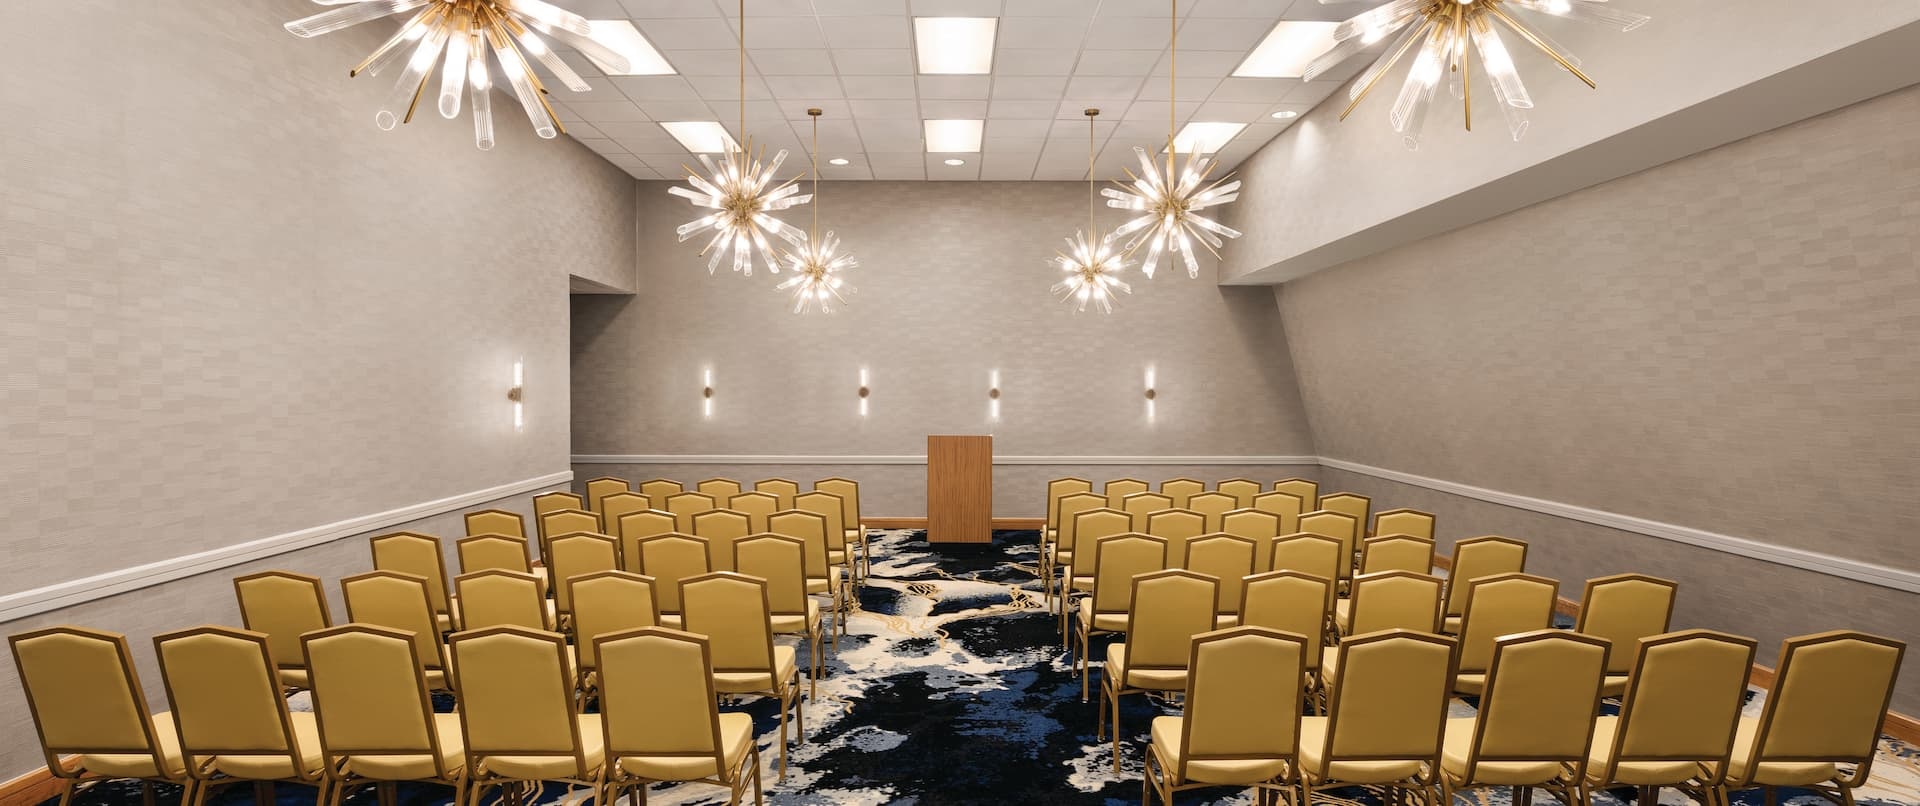 Florida Meeting Room Theater Seating